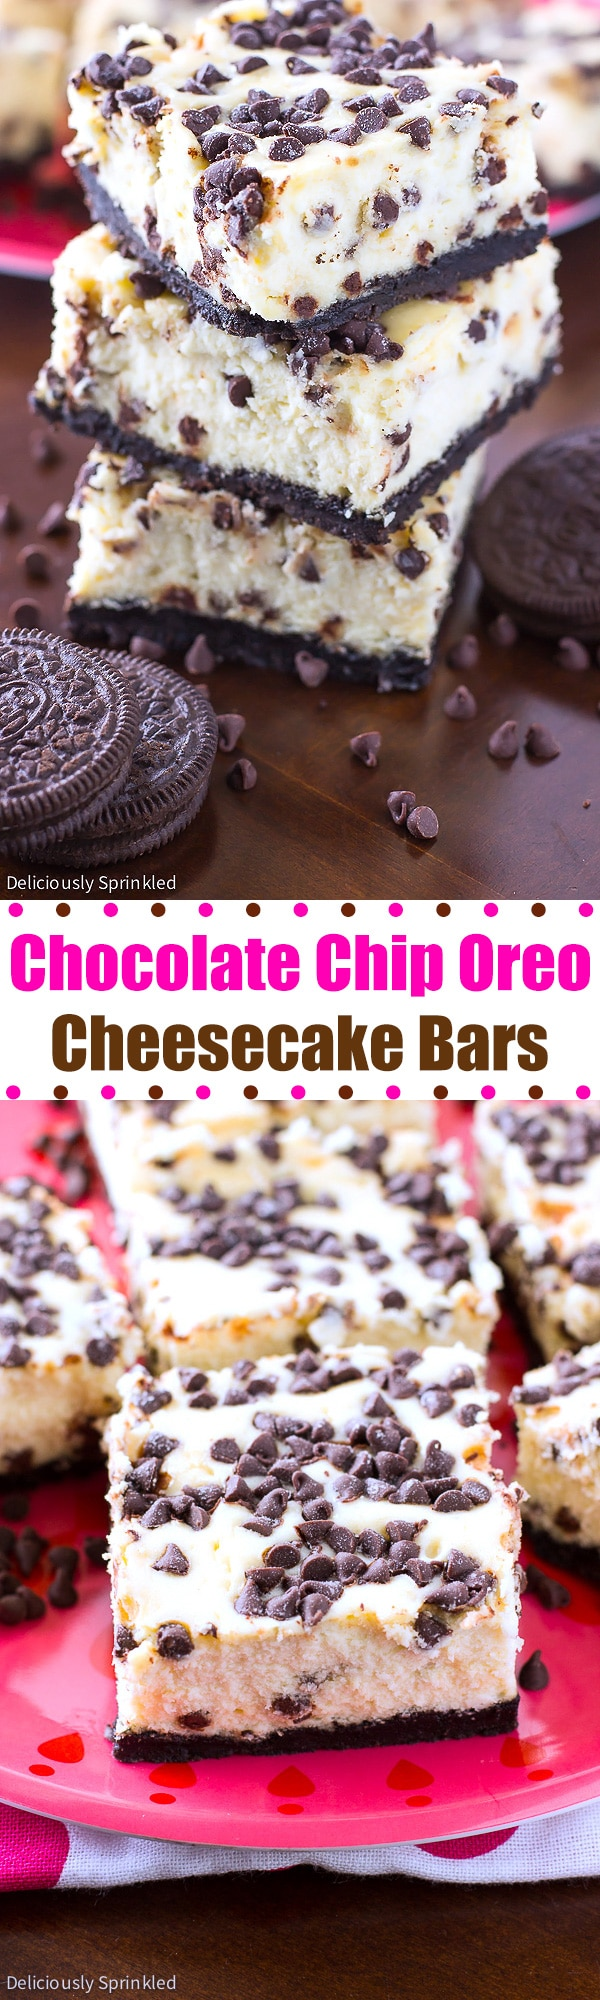 Chocolate Chip Oreo Cheesecake Bars Recipe